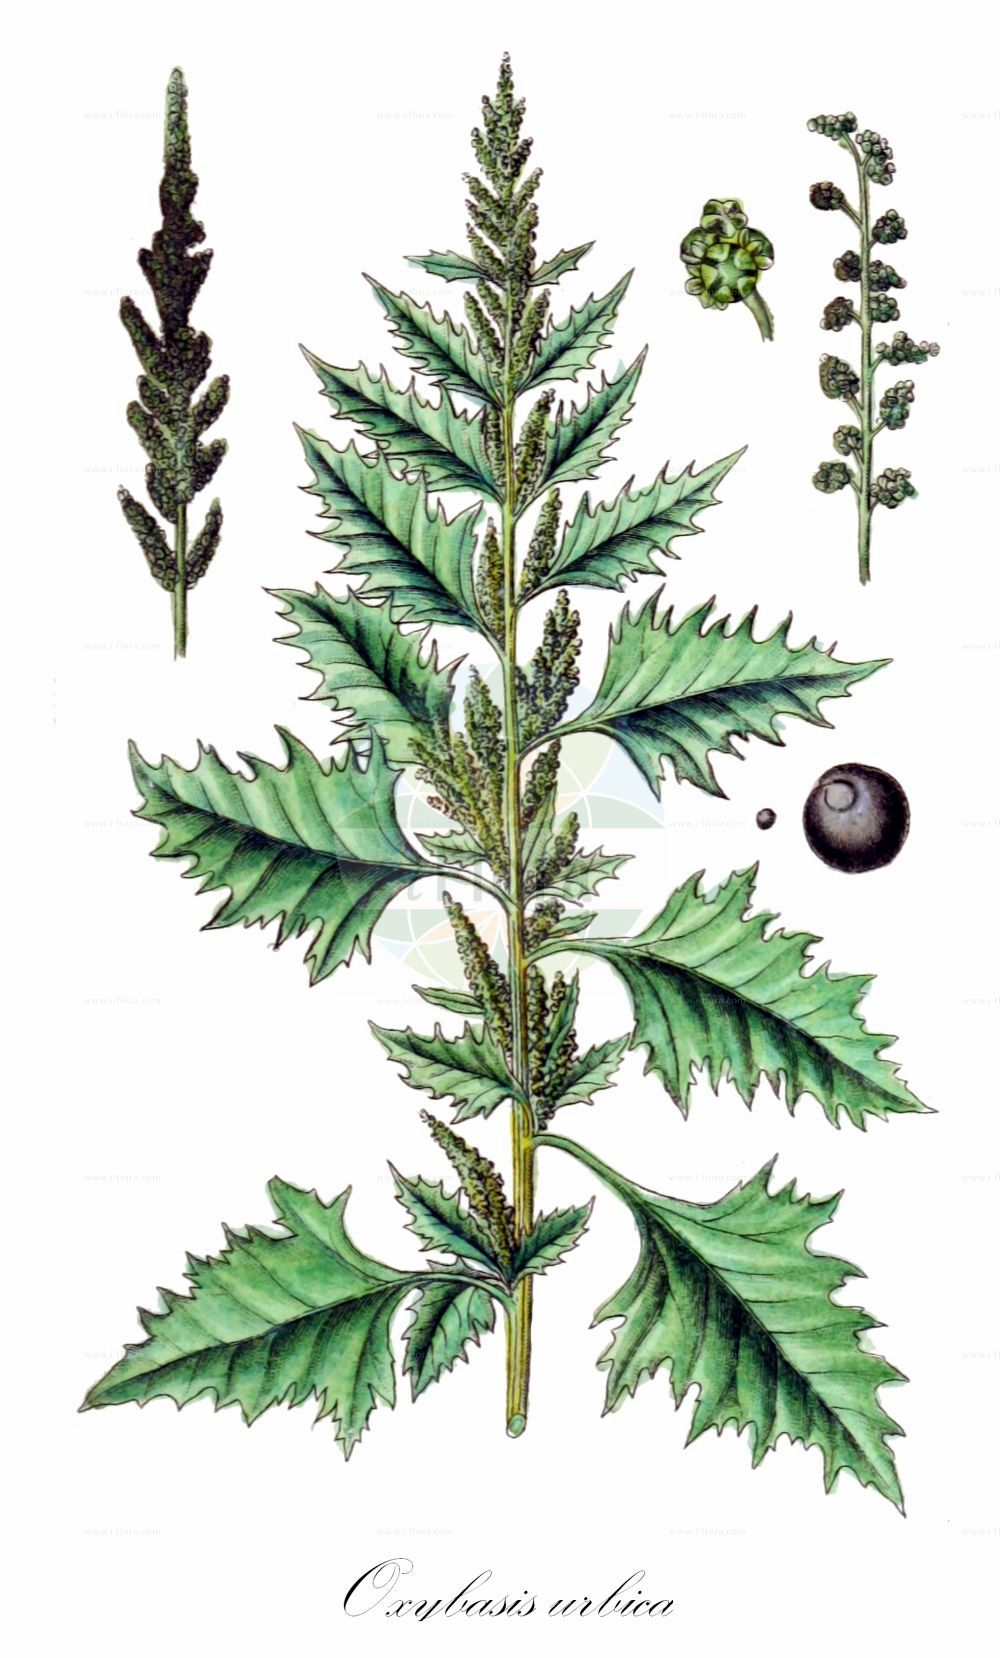 Historische Abbildung von Oxybasis urbica (Keilblaettriger Strassen-Gaensefuss - Upright Goosefoot). Das Bild zeigt Blatt, Bluete, Frucht und Same. ---- Historical Drawing of Oxybasis urbica (Keilblaettriger Strassen-Gaensefuss - Upright Goosefoot).The image is showing leaf, flower, fruit and seed.(Oxybasis urbica,Keilblaettriger Strassen-Gaensefuss,Upright Goosefoot,Chenopodium deltoideum,Chenopodium intermedium,Chenopodium melanospermum,Chenopodium rhombifolium,Chenopodium urbicum,,Gewoehnlicher Strassen-Gaensefuss,Stadt-Gaensefuss,Strassen-Gaensefuss,City Goosefoot,Triangular-leaved Goosefoot,Oxybasis,Amaranthaceae,Fuchsschwanzgewaechse,Pigweed family,Blatt,Bluete,Frucht,Same,leaf,flower,fruit,seed,Sturm (1796f))